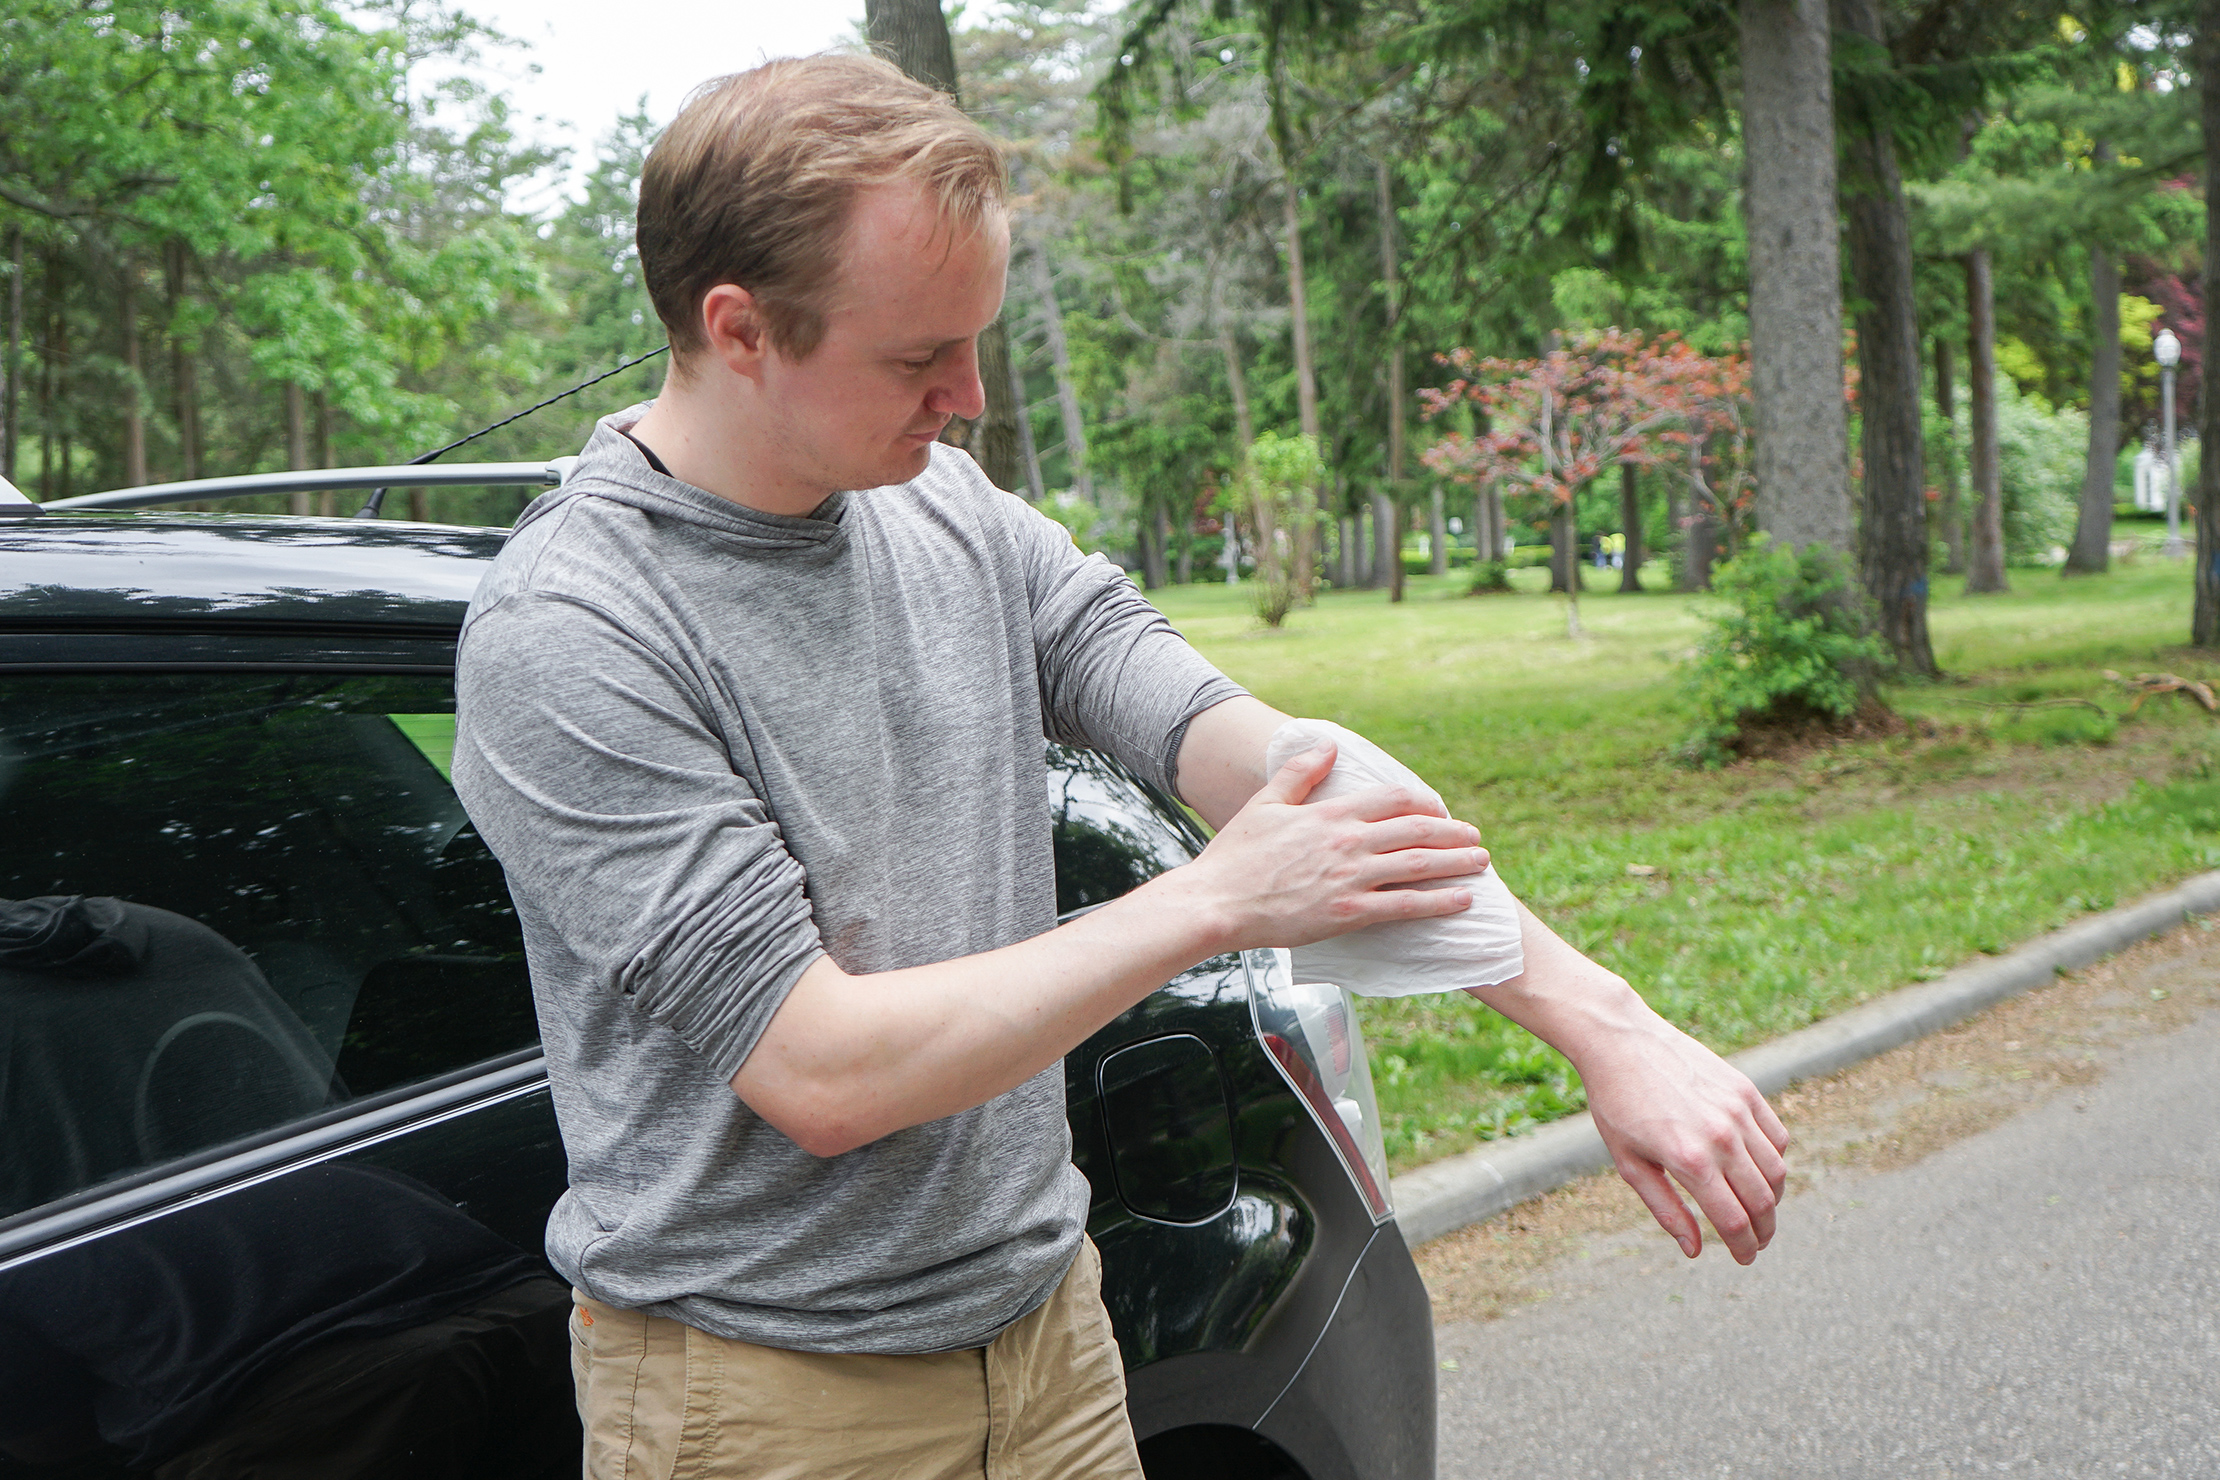 Wiping Arm Down With A Wipe Road Trip Guide